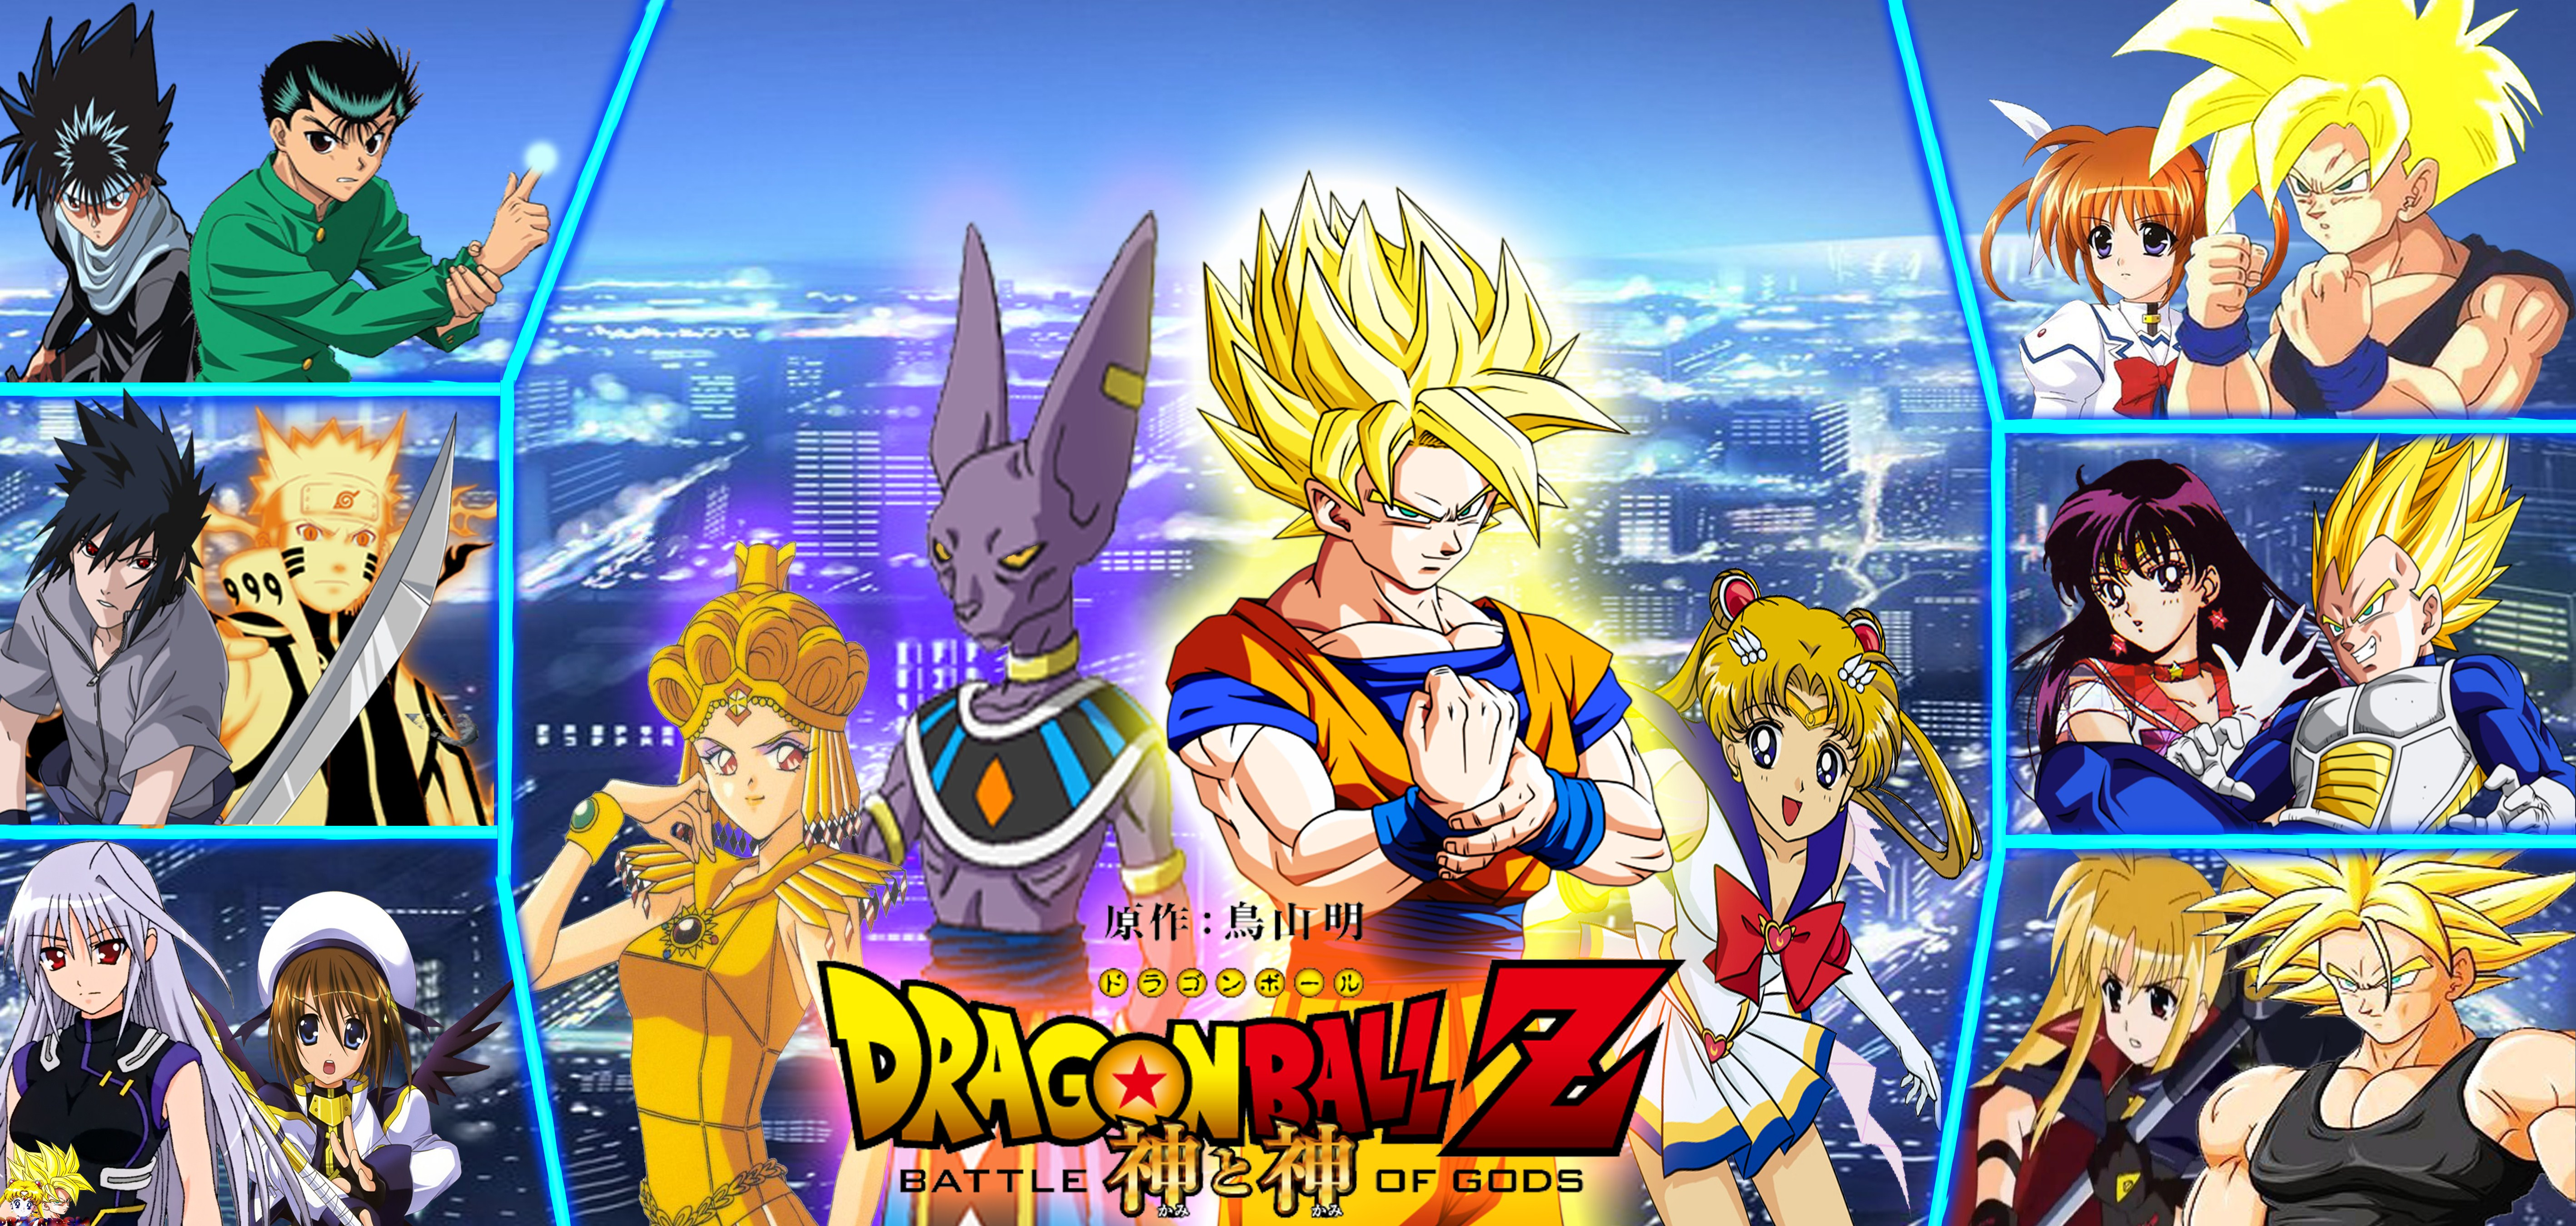 Most Viewed Dragon Ball Z Battle Of Gods Wallpapers 4k Wallpapers